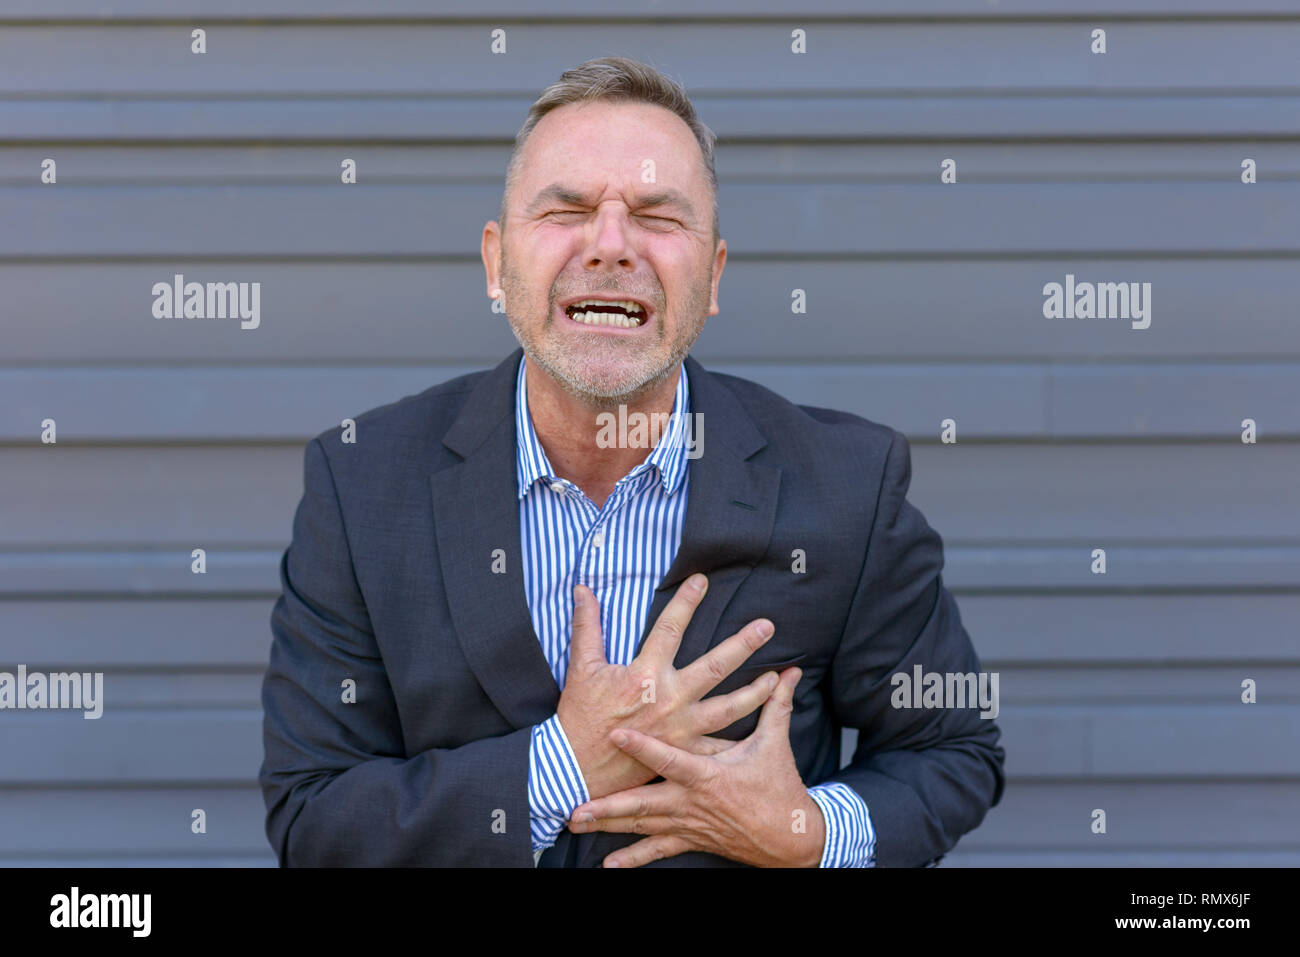 Middle-aged businessman suffering chest pains clutching his chest and grimacing as a prelude to a heart attack or myocardial infarct - Stock Image